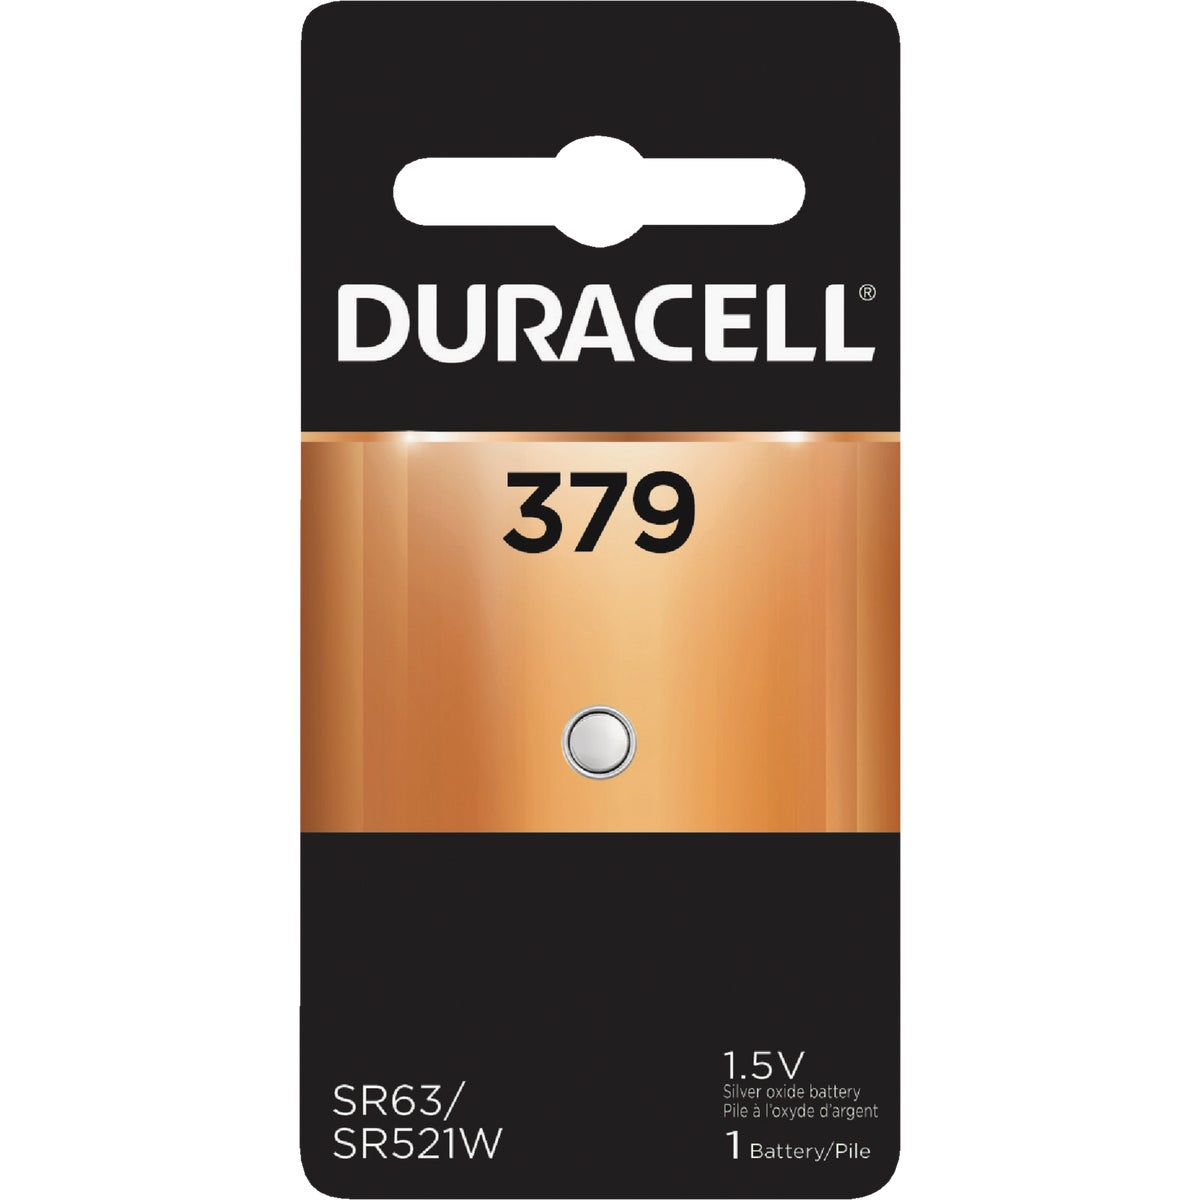 D379 1.5V WATCH BATTERY - 41887 by P & G  Duracell